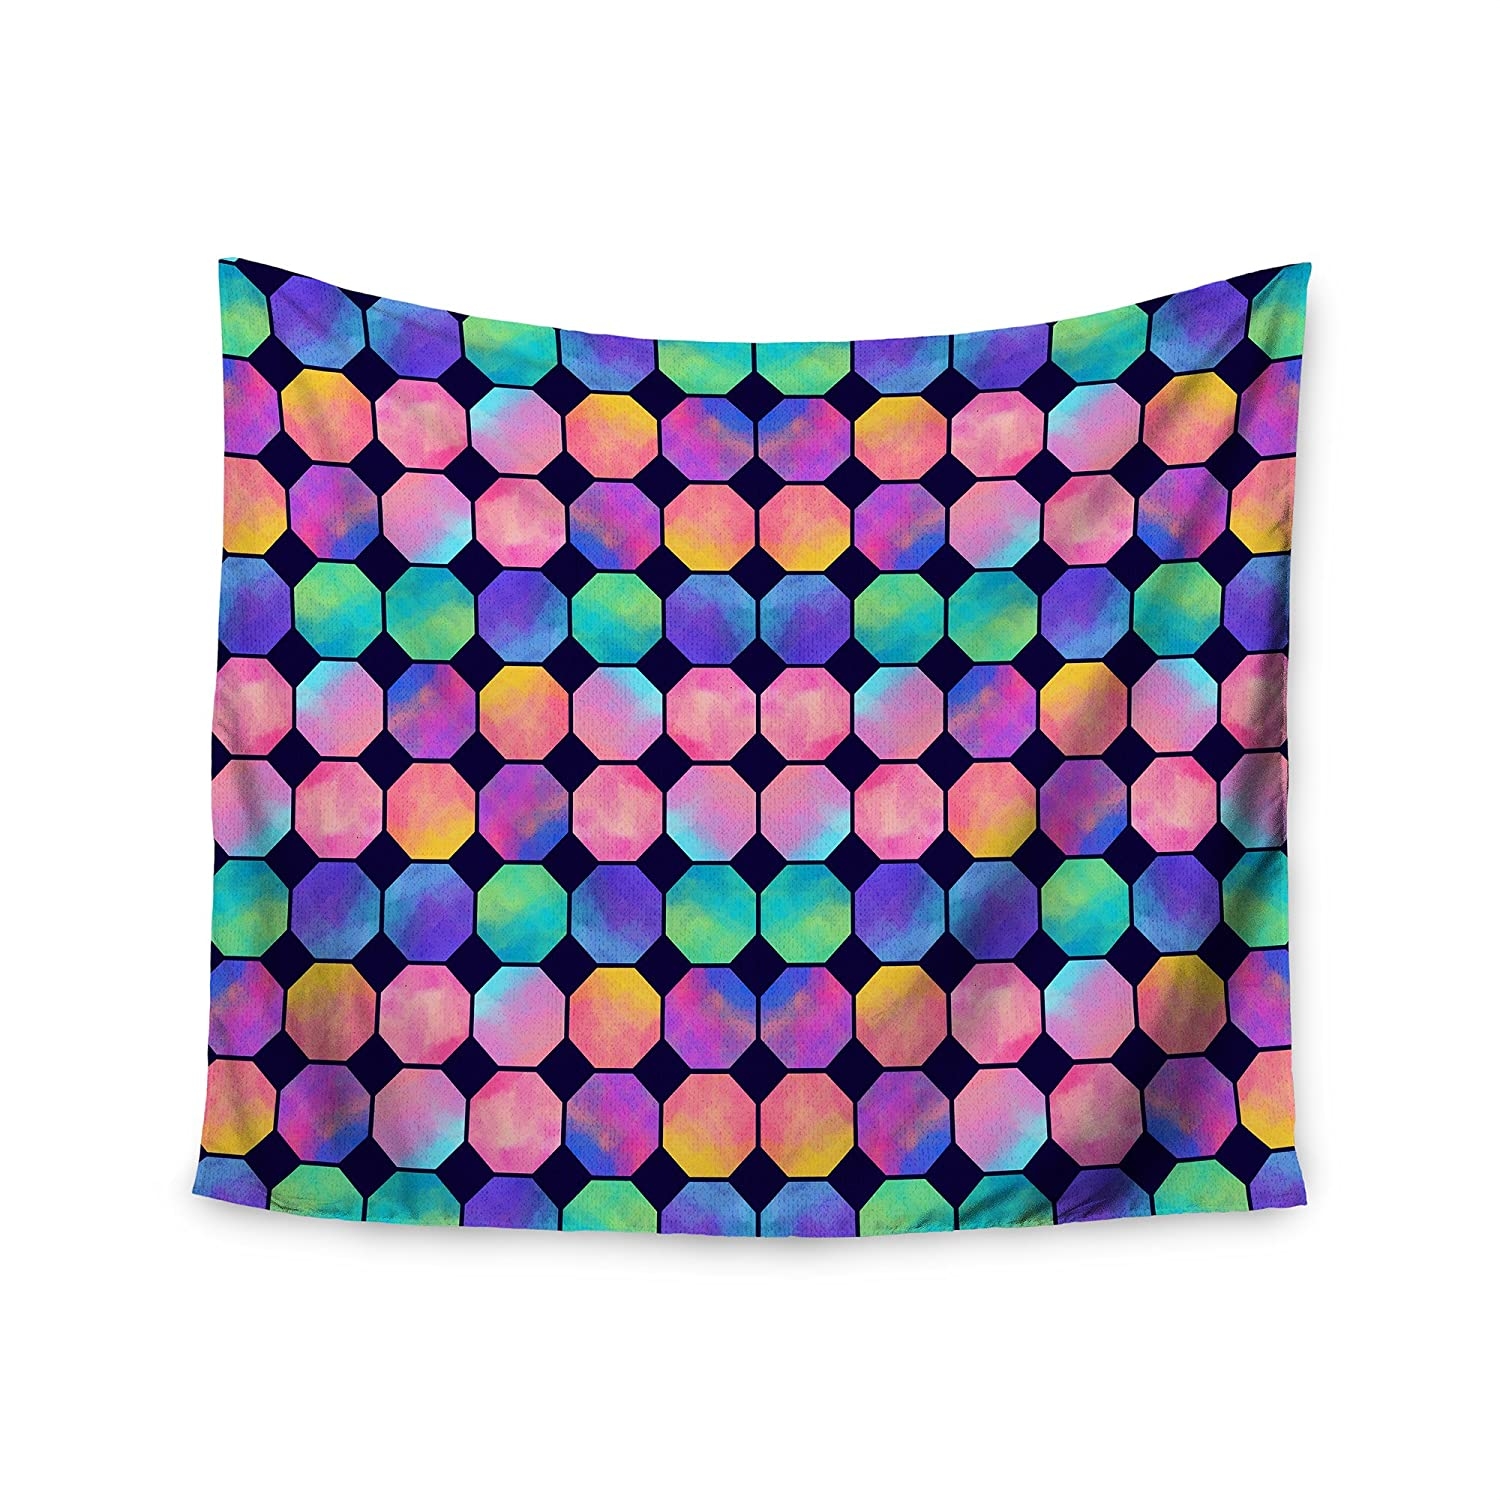 Kess InHouse Noonday Design Colorful Octagons Watercolor Abstract Wall Tapestry 51 x 60